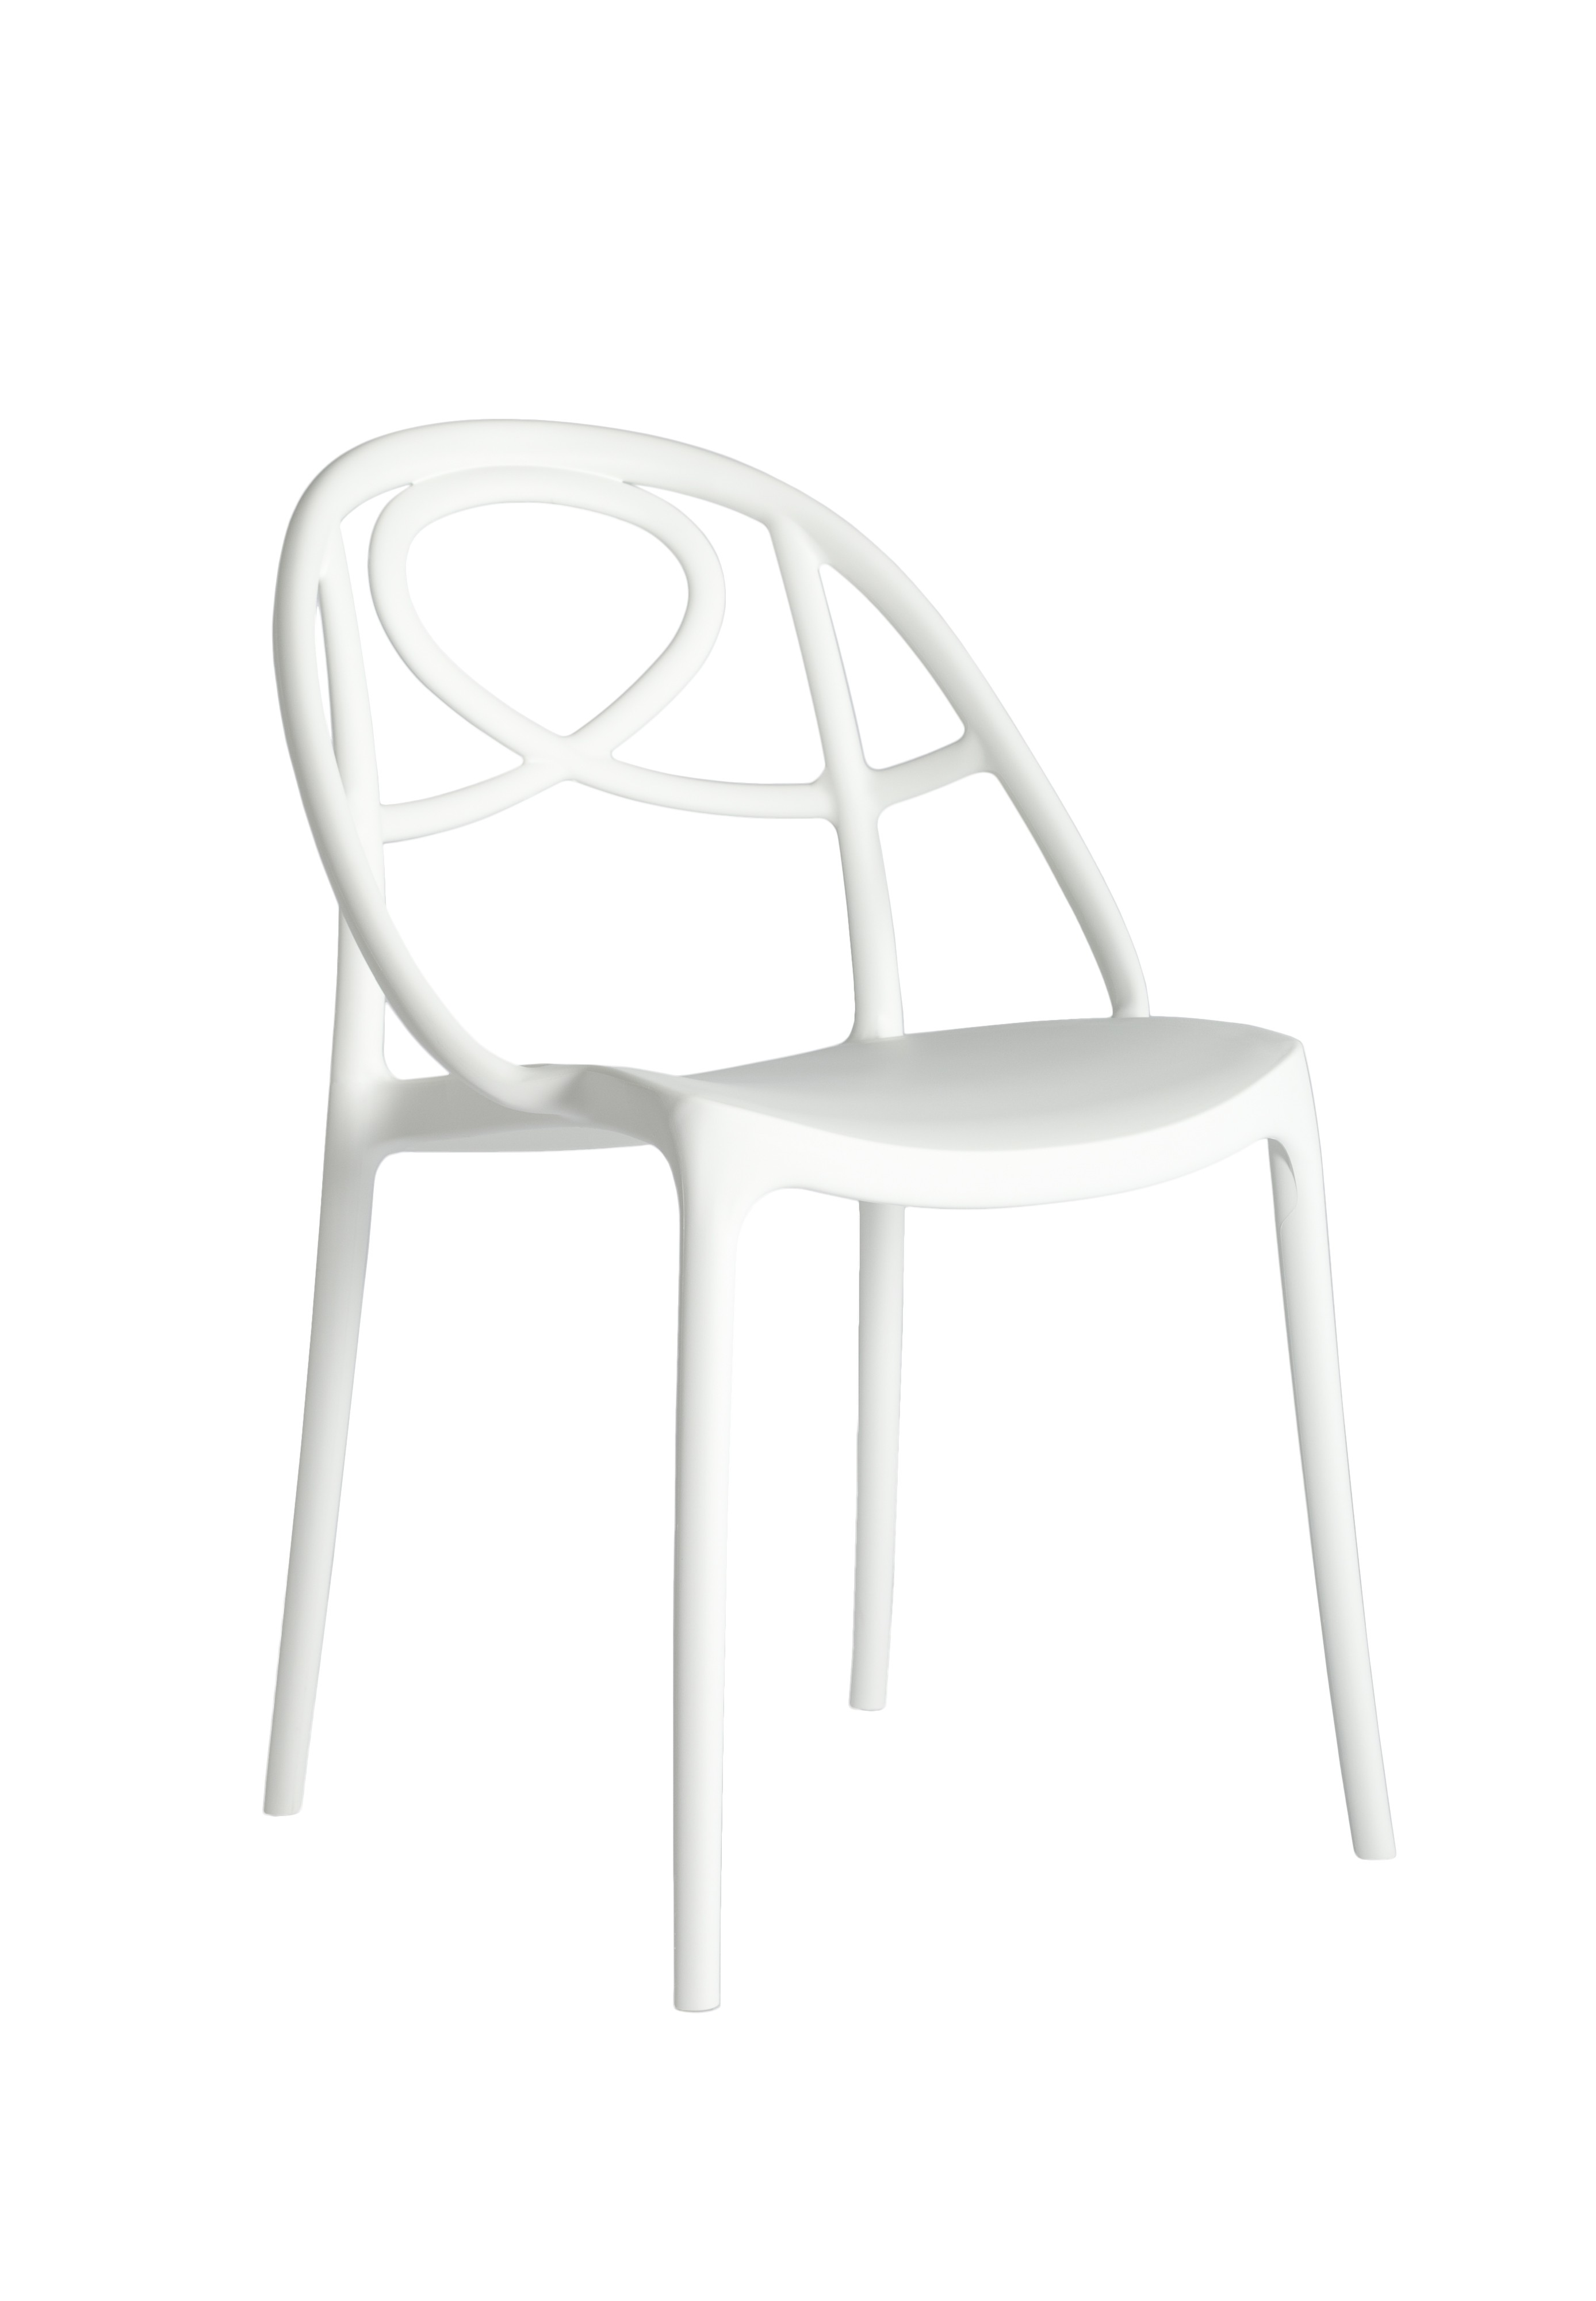 Green Srl Dining Chair Etoile No Arms Design Dining Chair